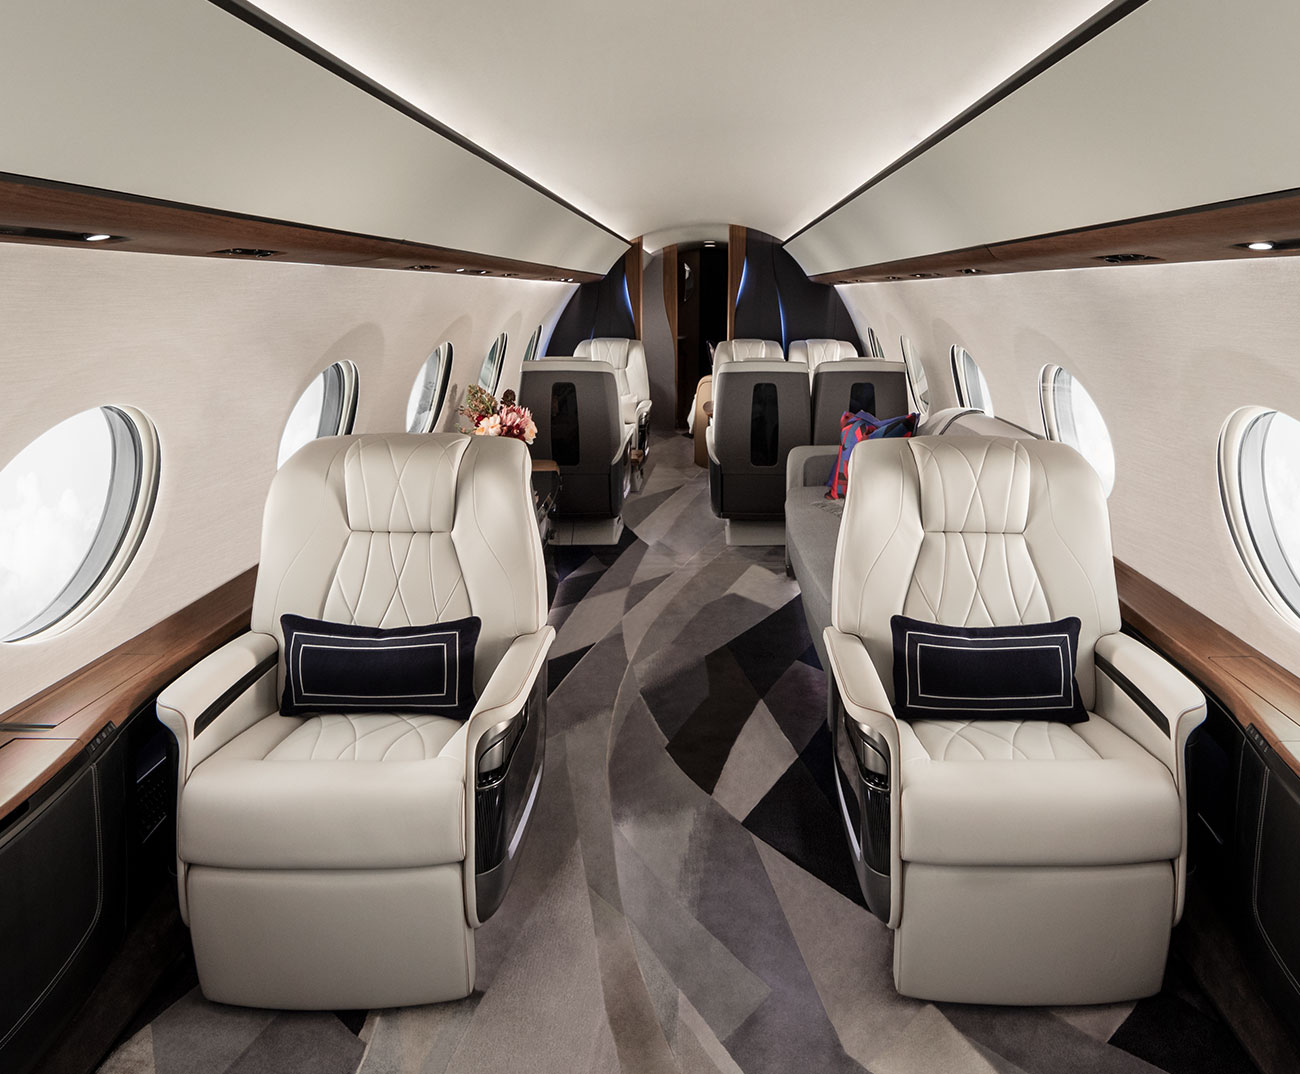 White leather seats in a private jet